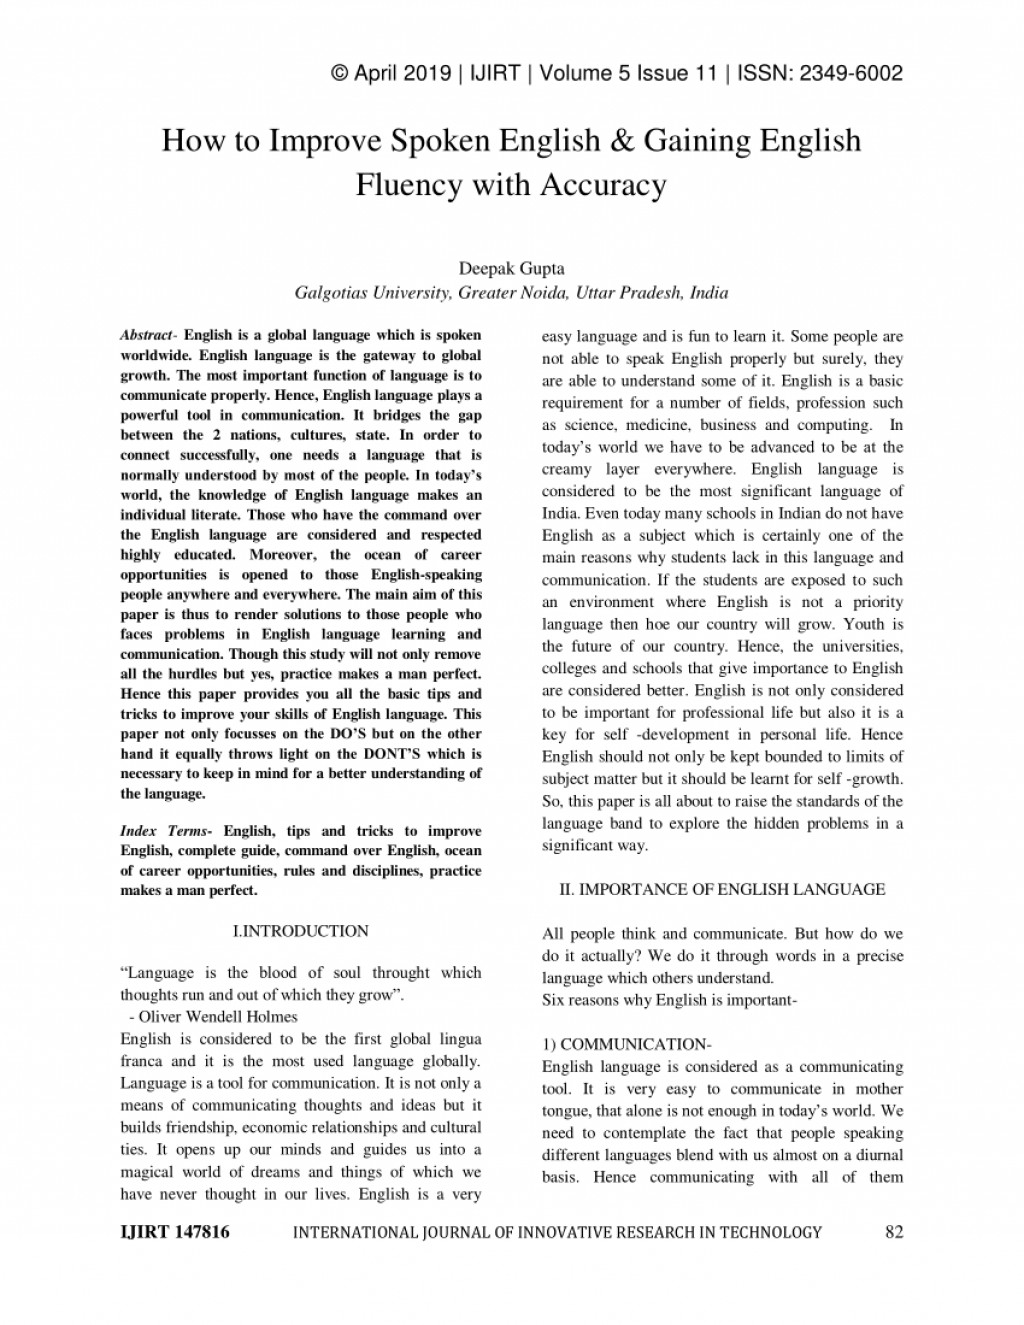 008 Research Paper English For Writing Papers Adrian Wallwork Pdf Marvelous 2011 Large